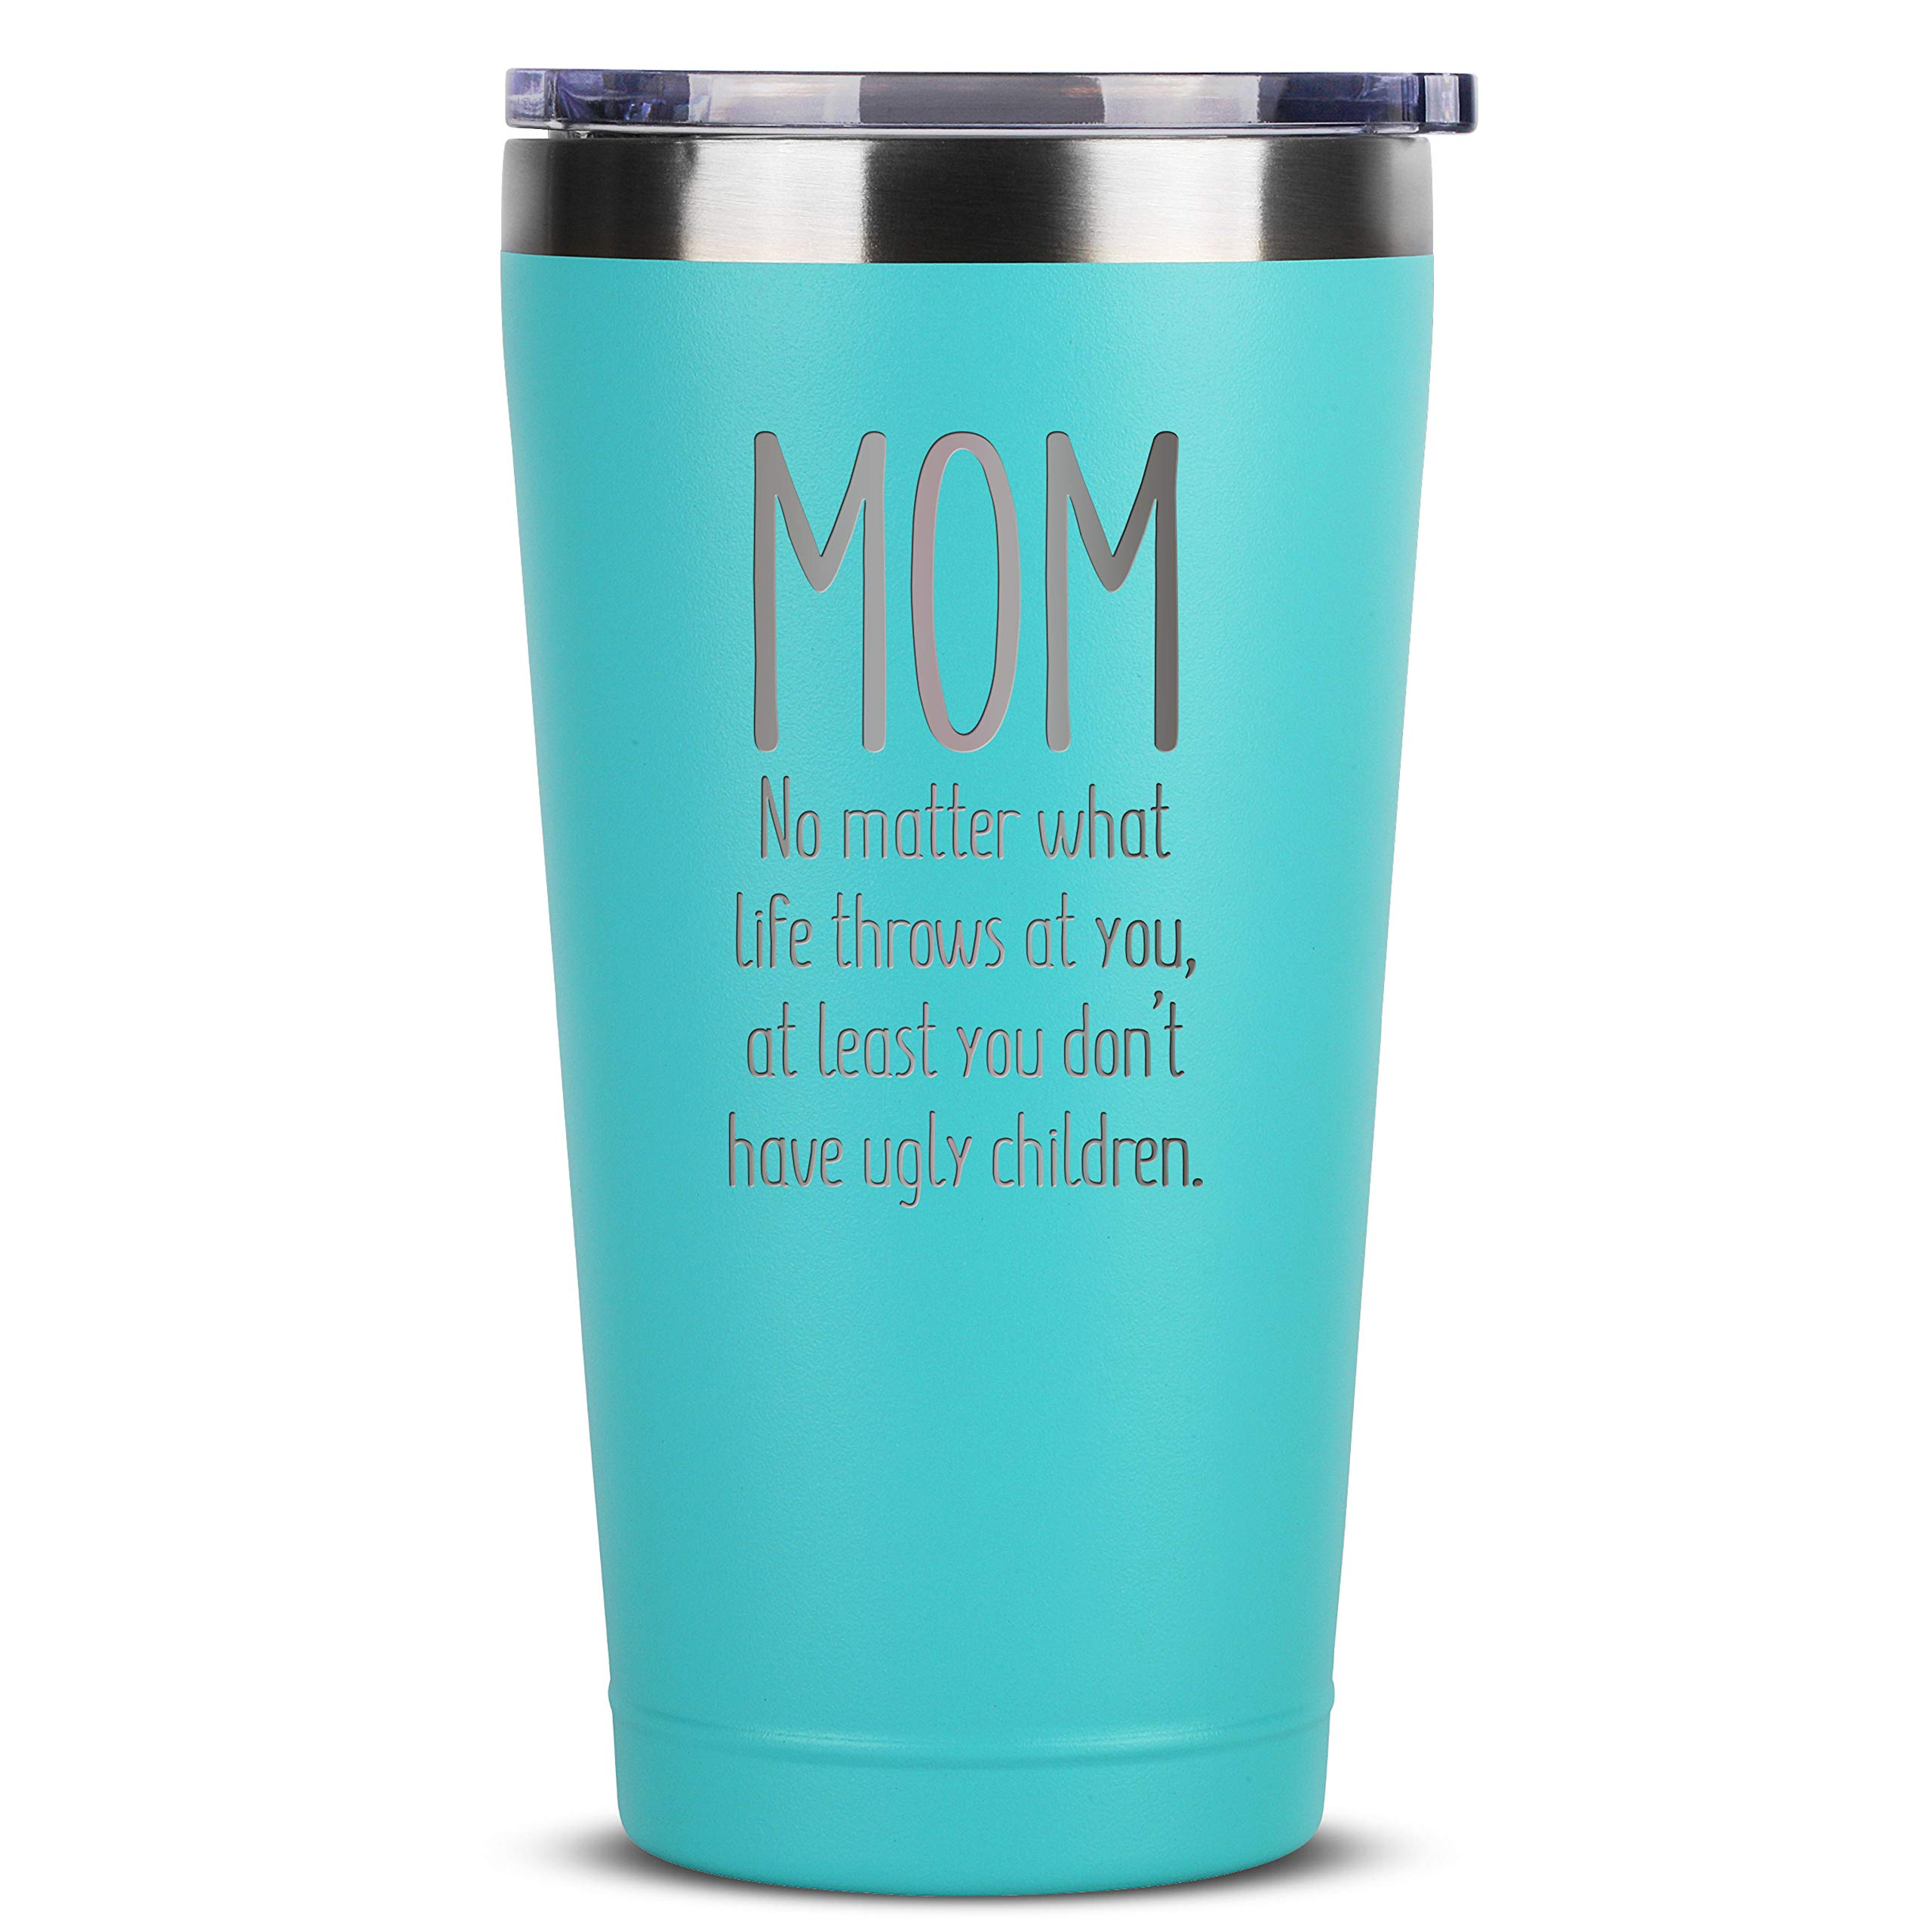 Pufuny Mothers Day Gifts from Daughters,Sons,Best Mom Ever 12 oz Stainless Steel Wine Tumbler,Mug,Mom Sippy Cup,Perfect Birthday Gift for Mother,Wife Mint Green